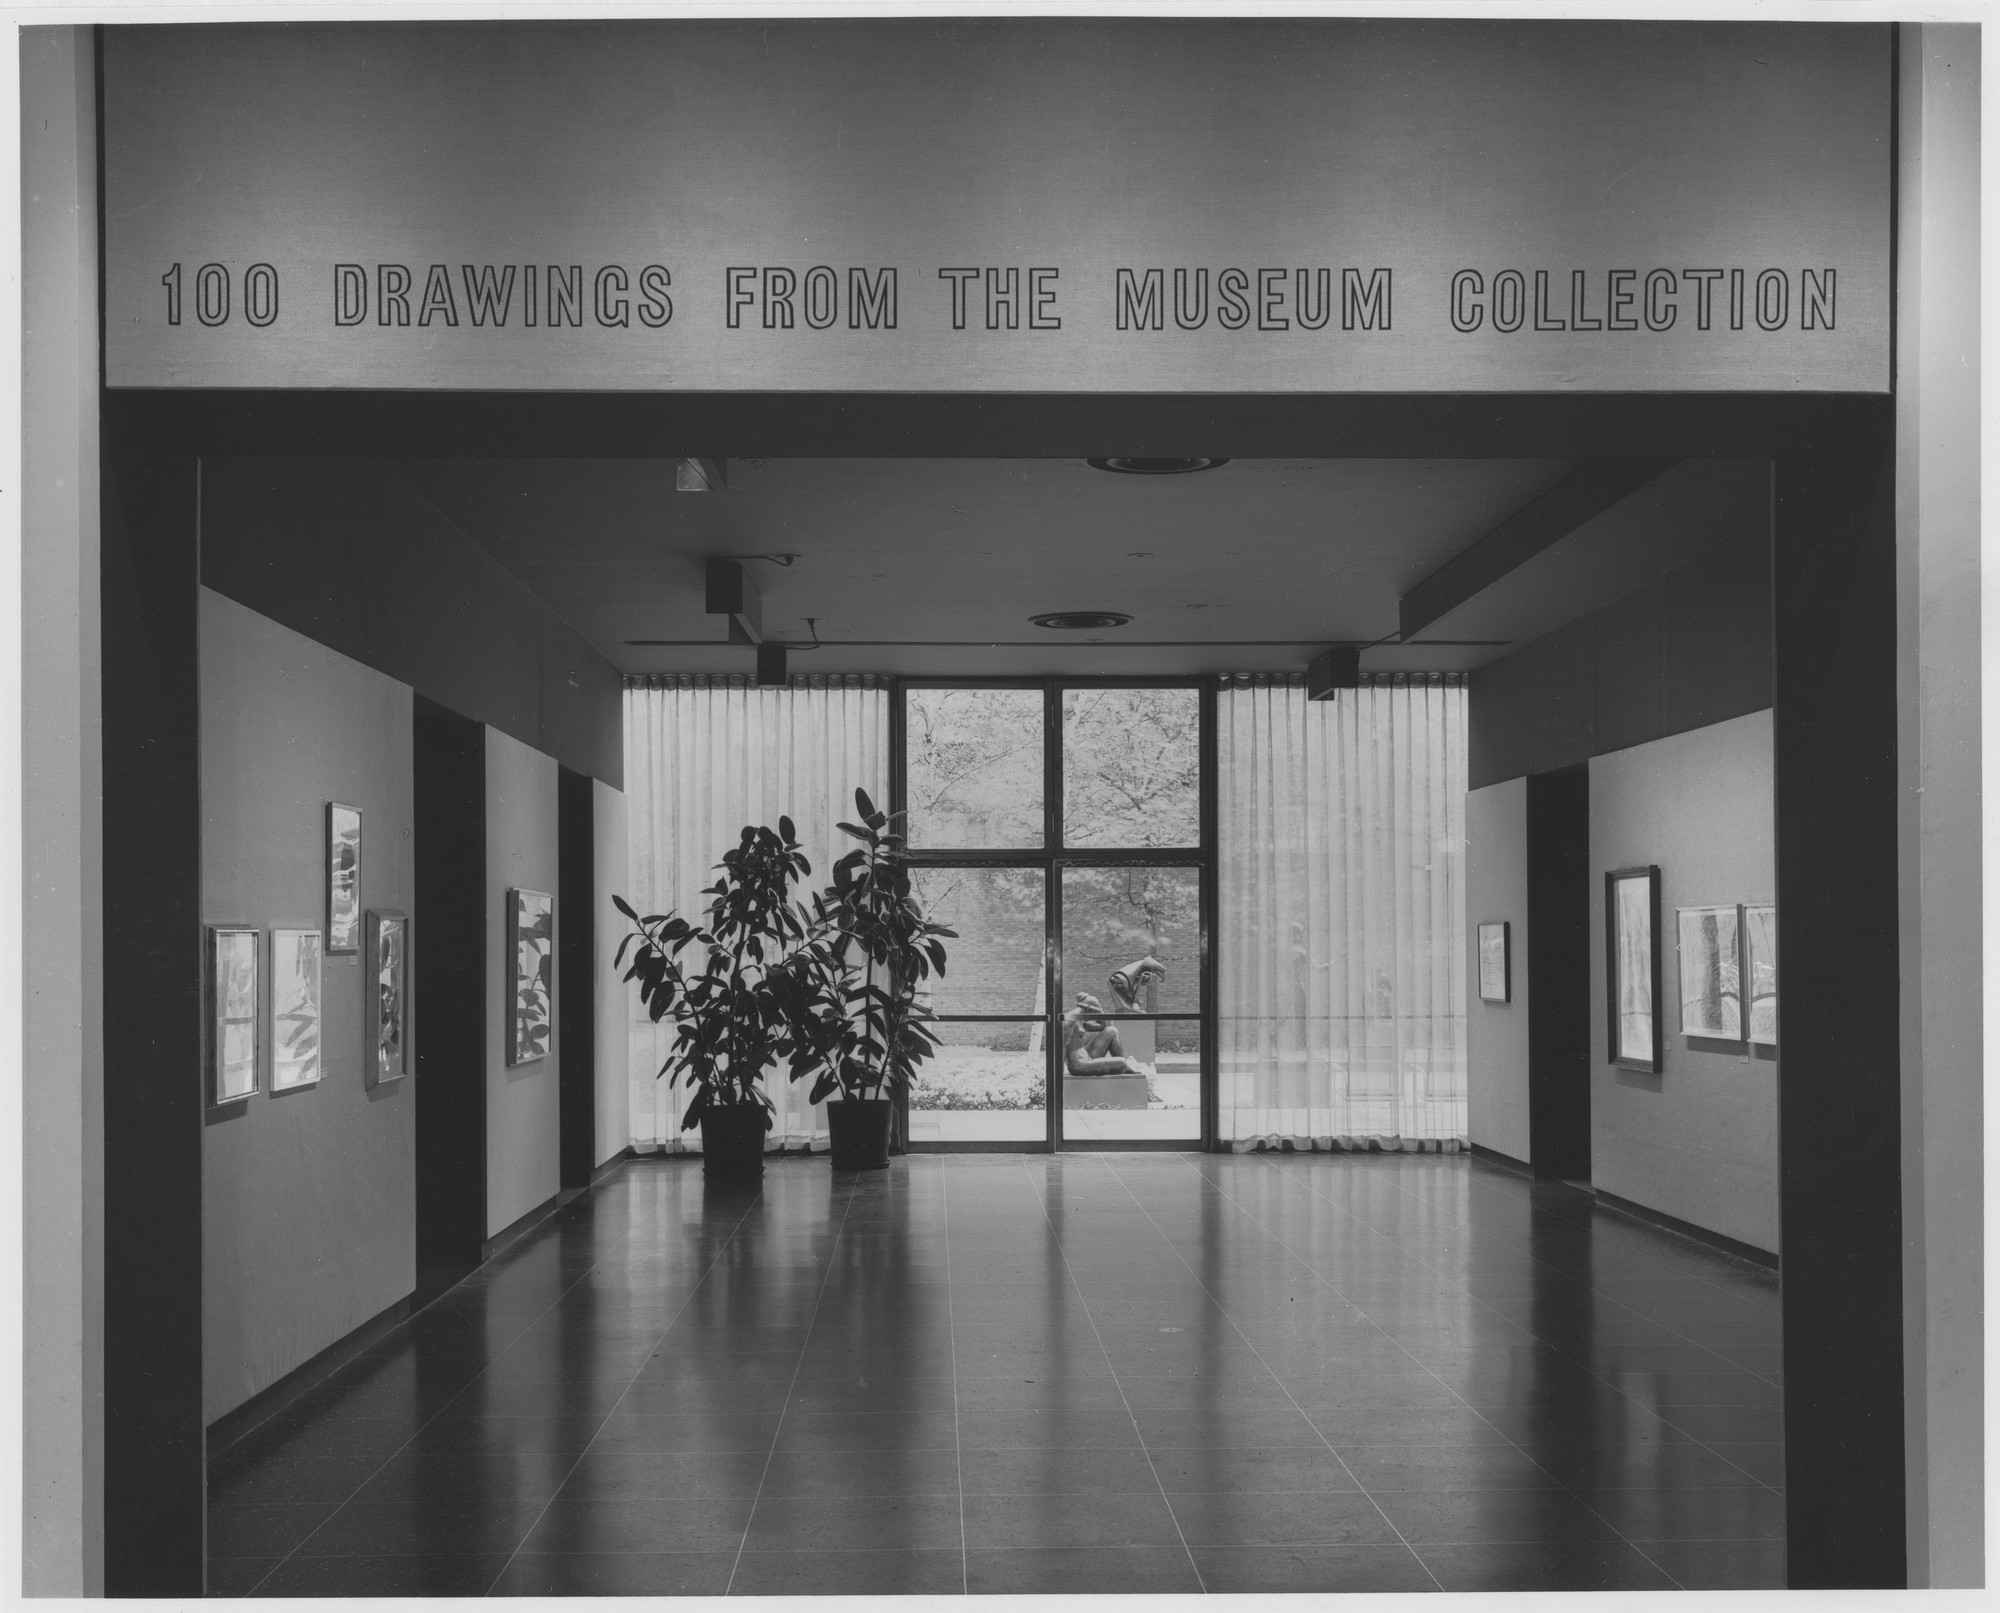 "Installation view of the exhibition, ""100 Drawings from the Museum Collection."" October 11, 1960–January 2, 1961. Photographic Archive. The Museum of Modern Art Archives, New York. IN674.1. Photograph by George Barrows."